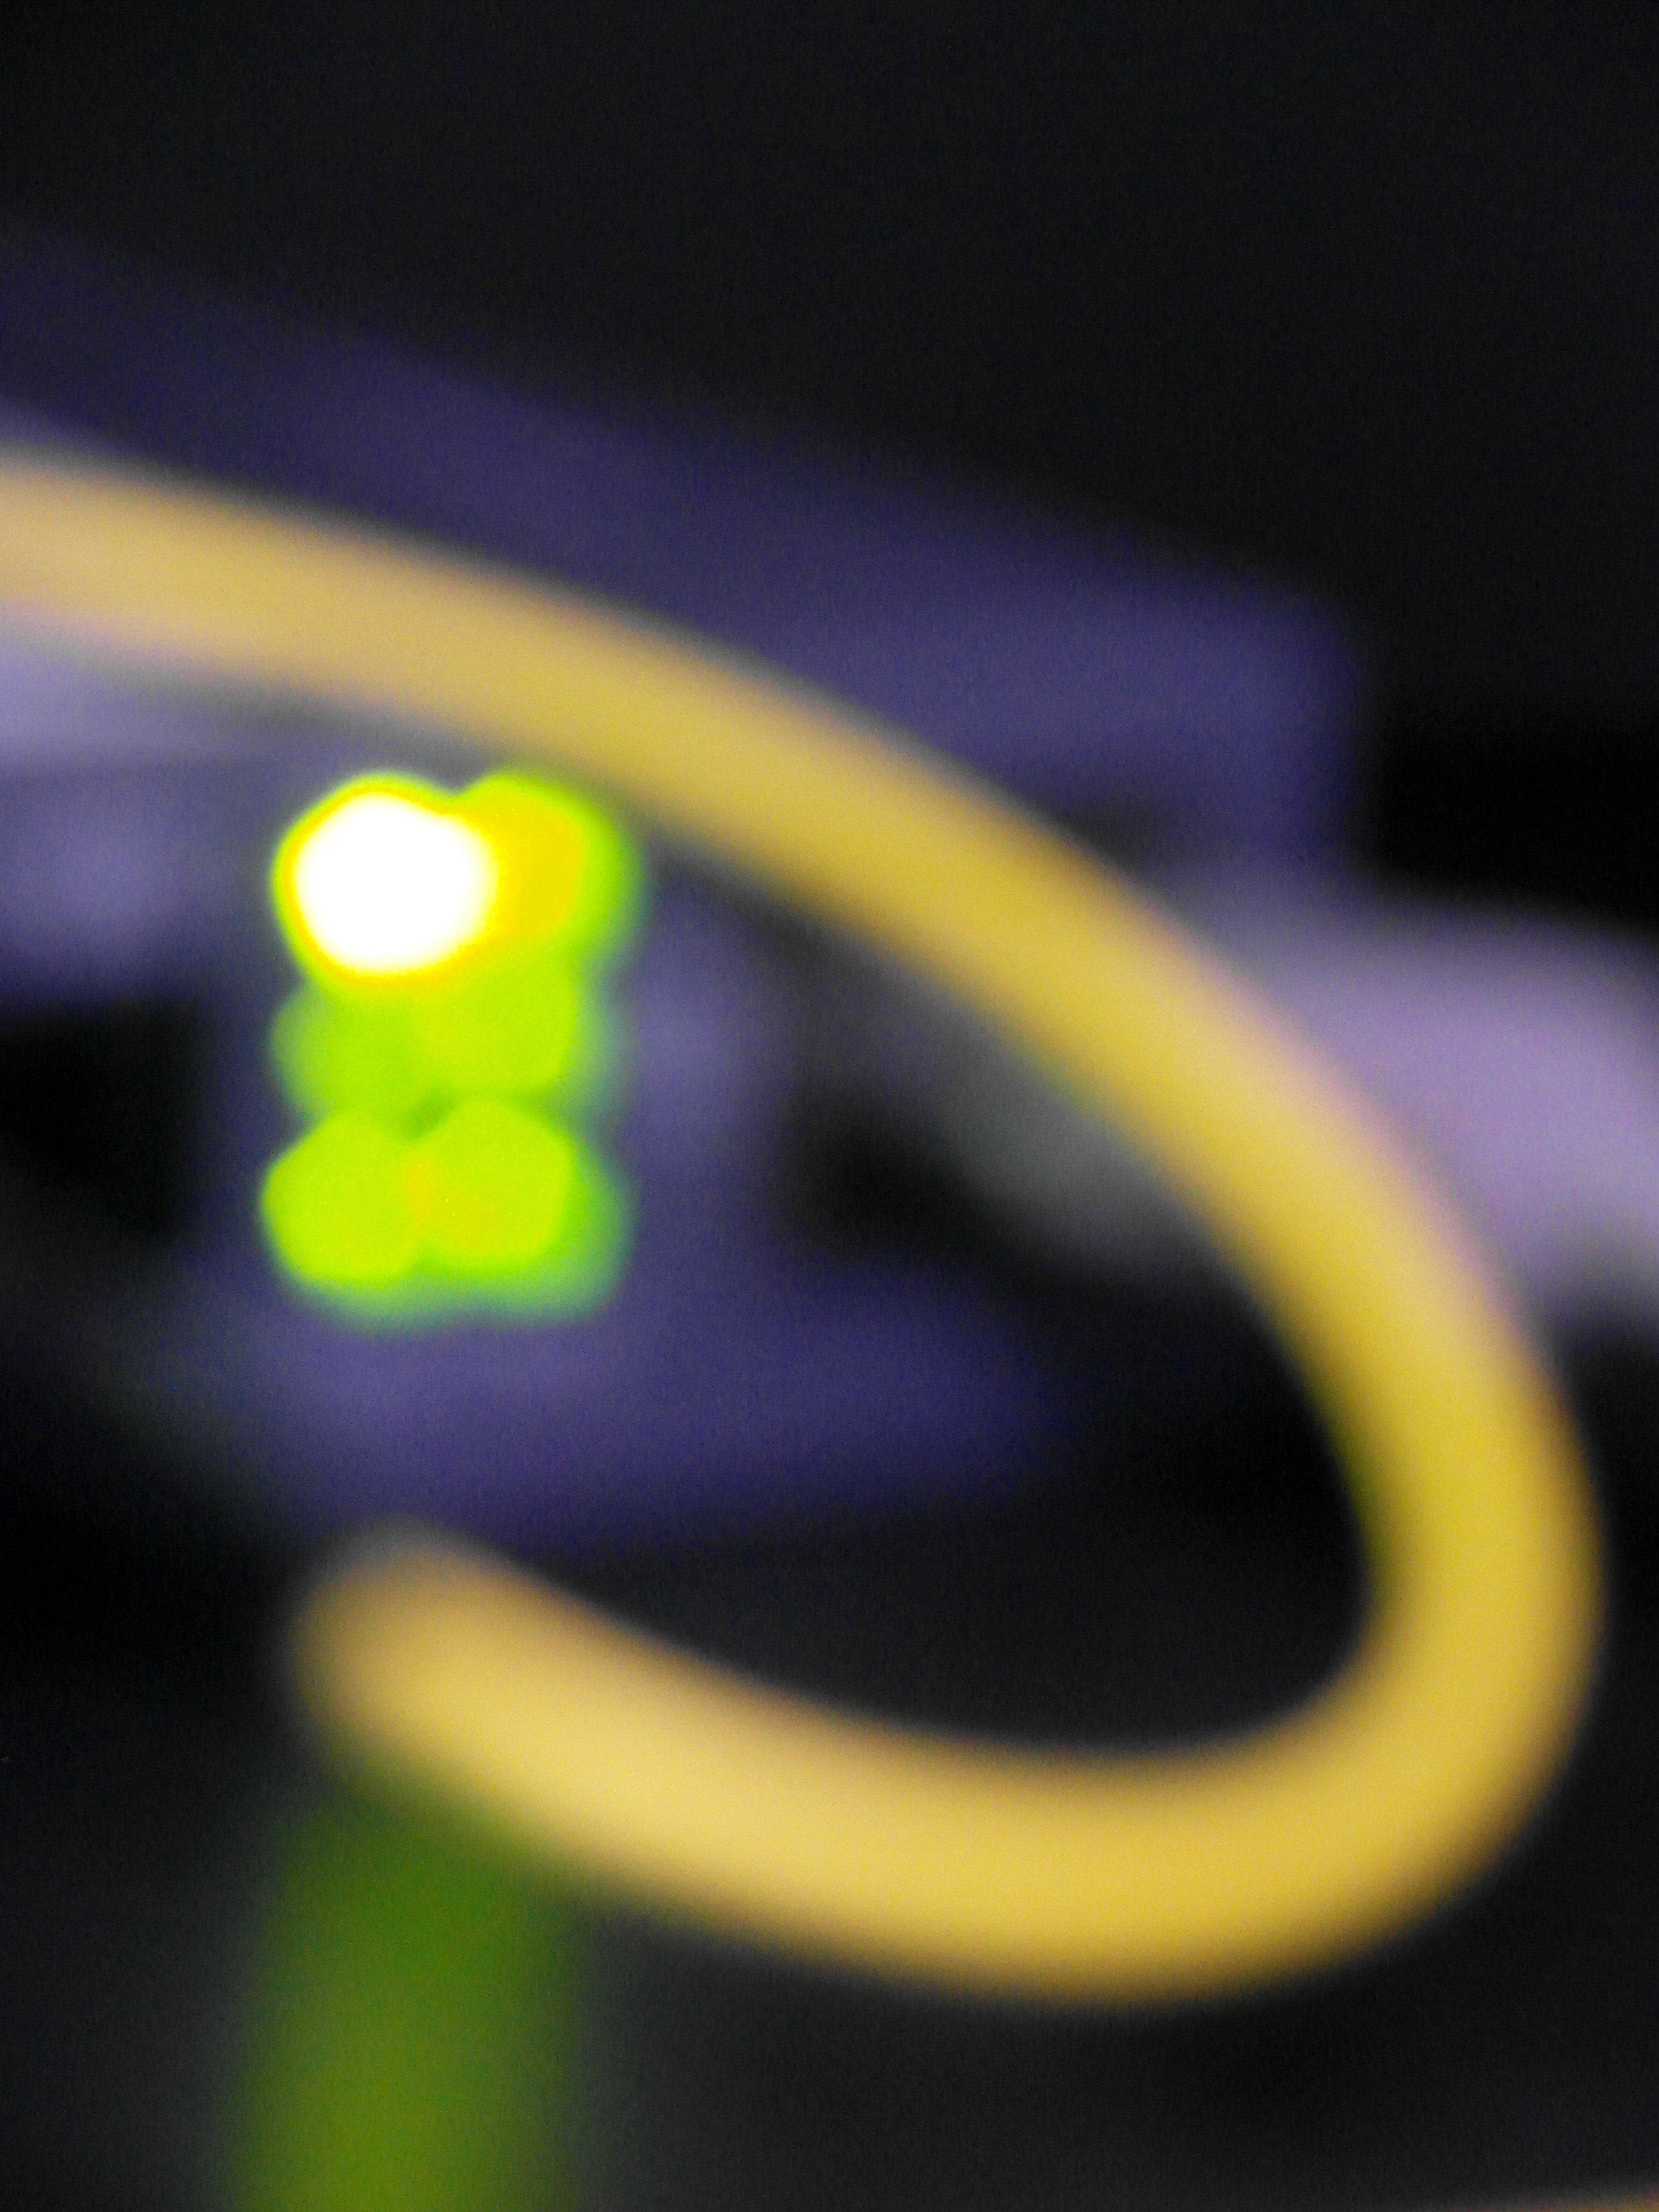 Abstract Blurry Technology, Abstract, Web, Traffic, Texture, HQ Photo